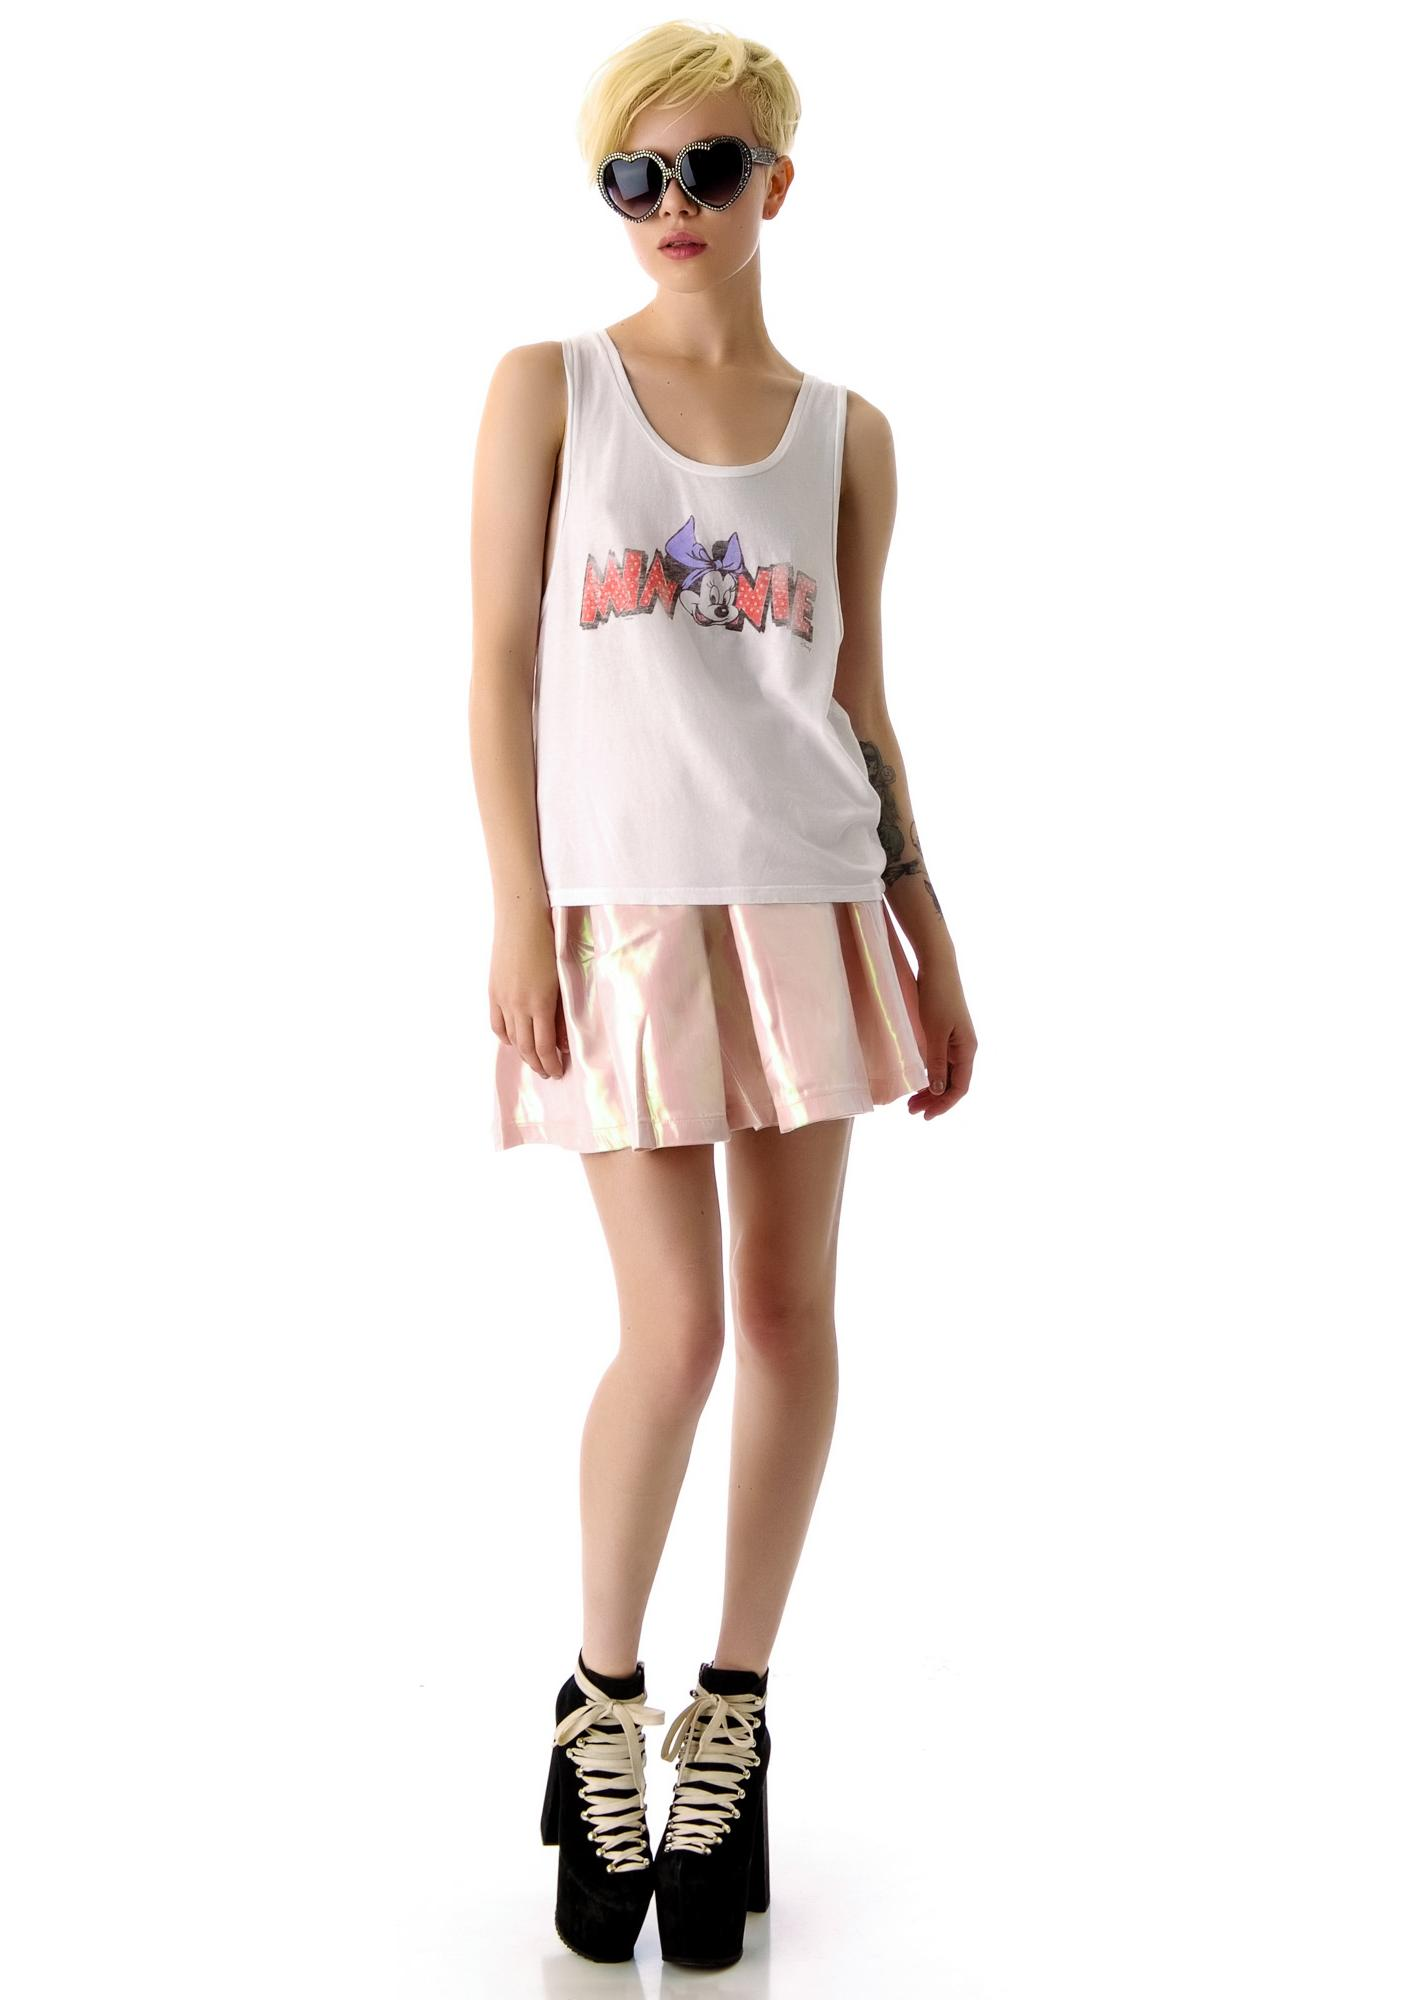 Junk Food Clothing Minnie Easy Rider Tank